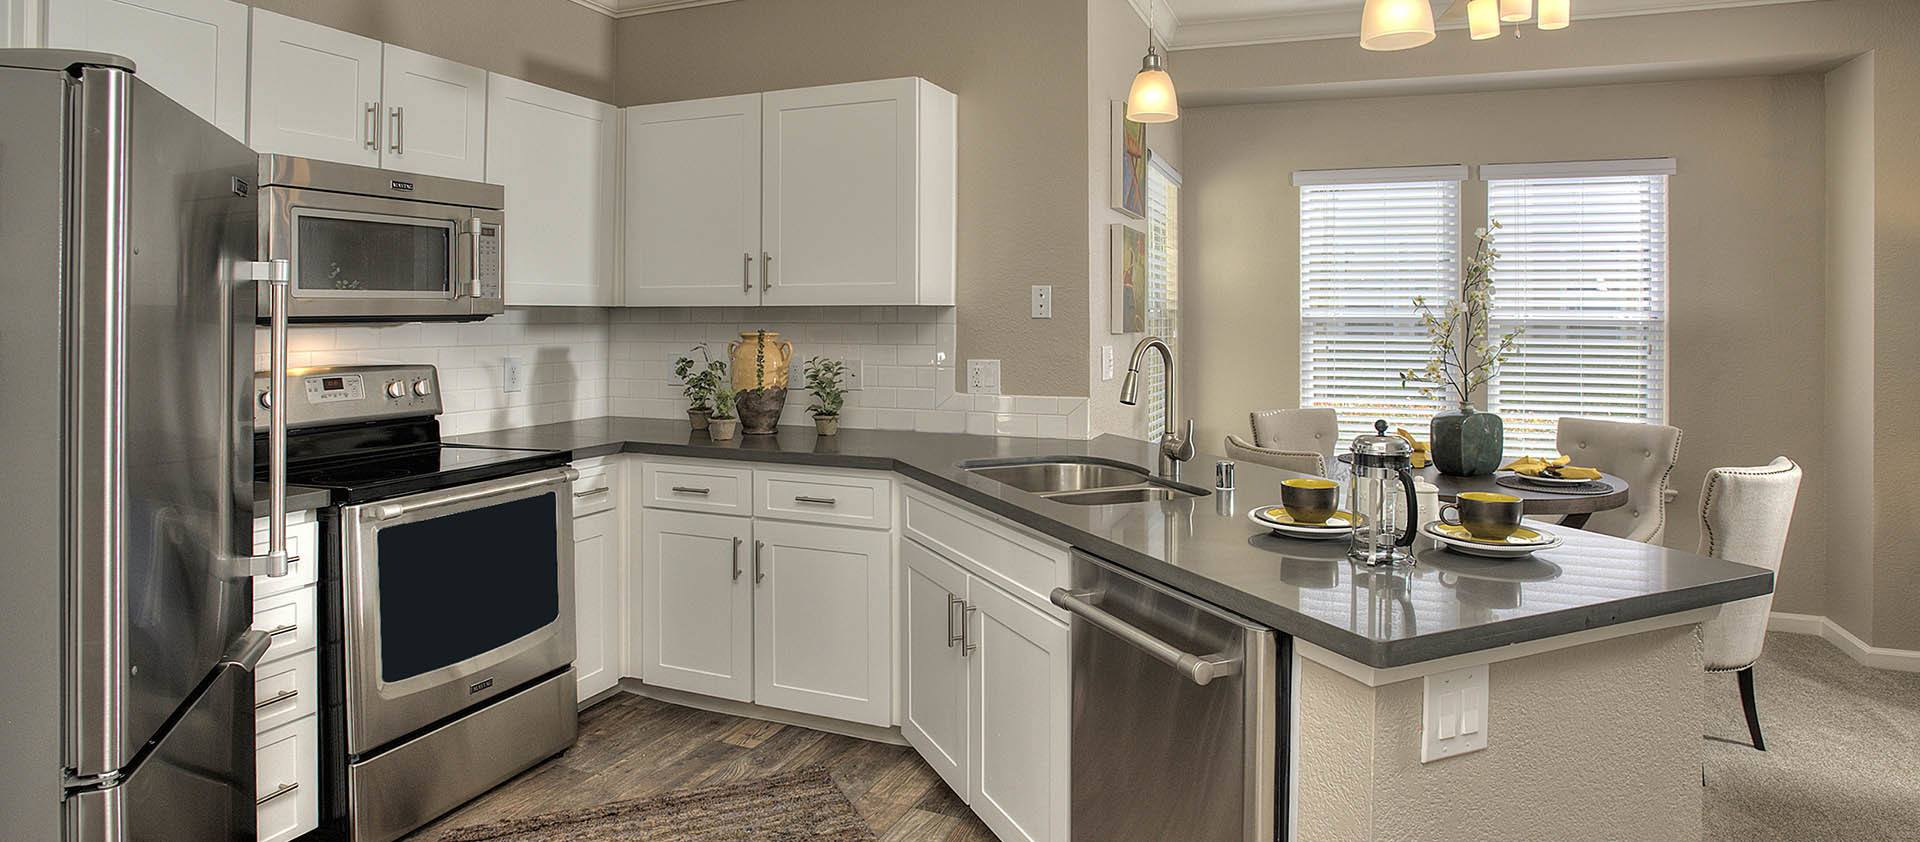 Kitchen With Stainless Appliances at Iron Point at Prairie Oaks in Folsom, California